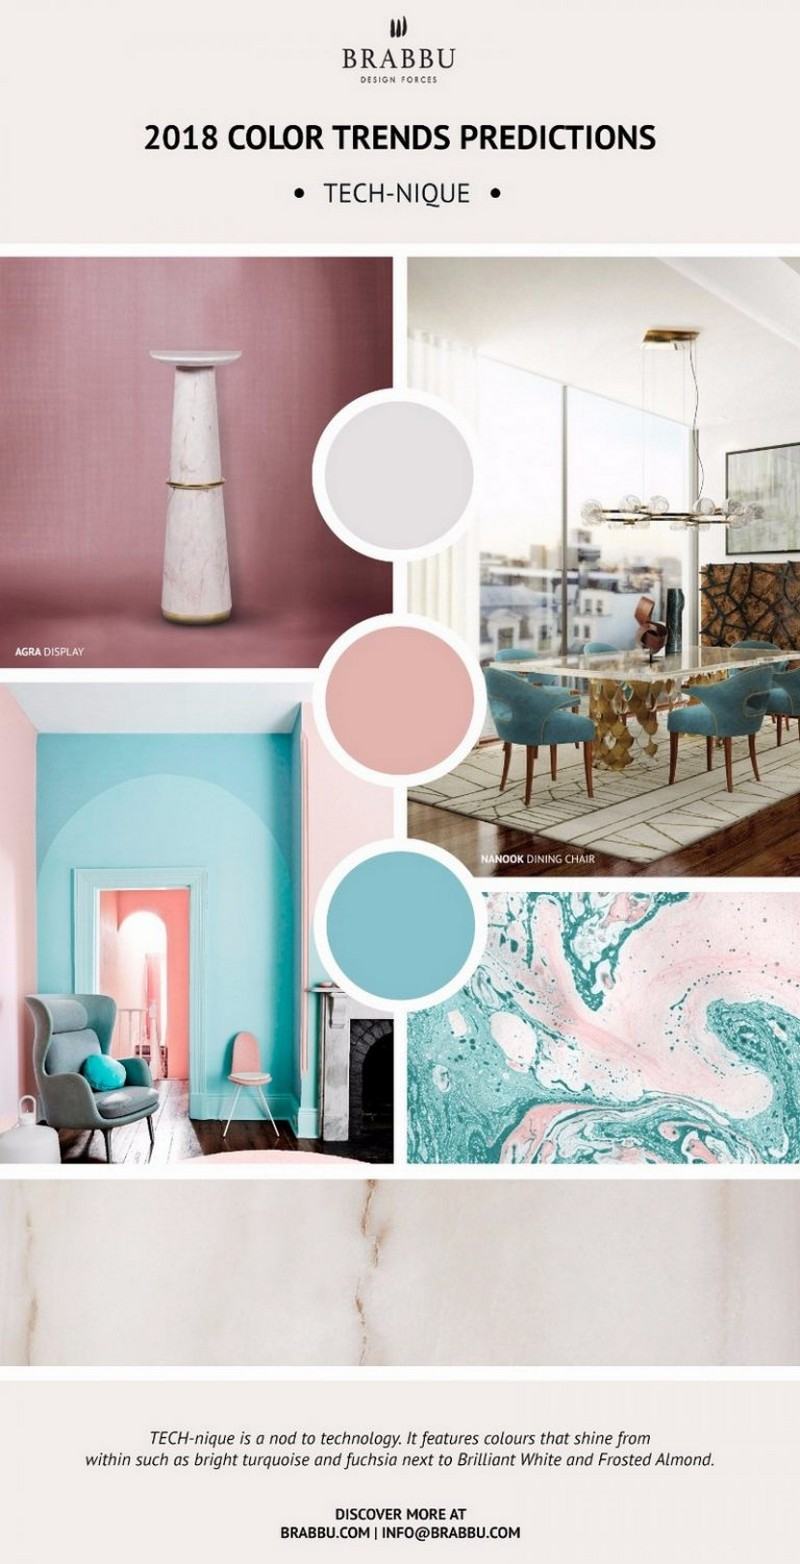 Discover More About Pantone's Color Trend Predictions for 2018 ➤ To see more news about the Interior Design Magazines, subscribe our newsletter right now! #interiordesignmagazines #bestdesignmagazines #interiordesign #designmagazines #pantone #pantone2018 #colorscheme #colorschemeideas @imagazines pantone's color trend predictions for 2018 Discover More About Pantone's Color Trend Predictions for 2018 Discover More About Pantones Color Trend Predictions for 2018 8